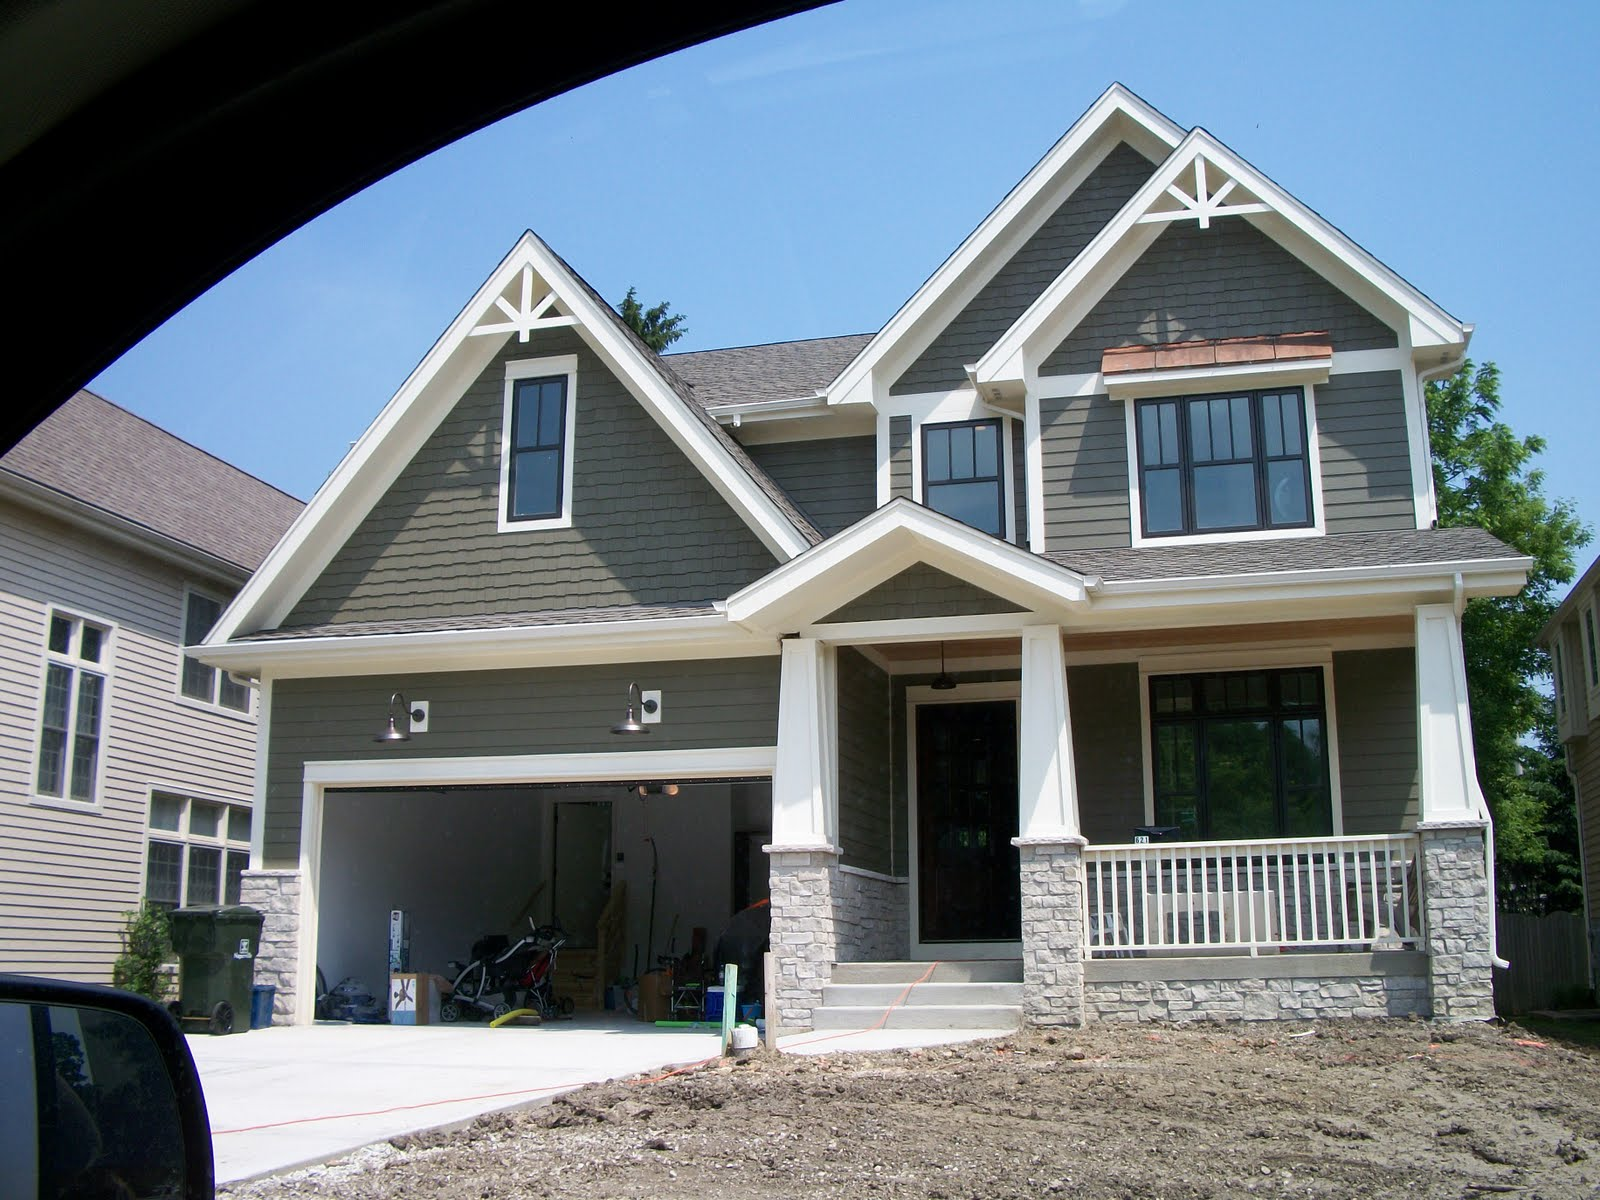 Popular Grey And White Exterior Paint Colors Supported With Stone Accent Shingled Wall